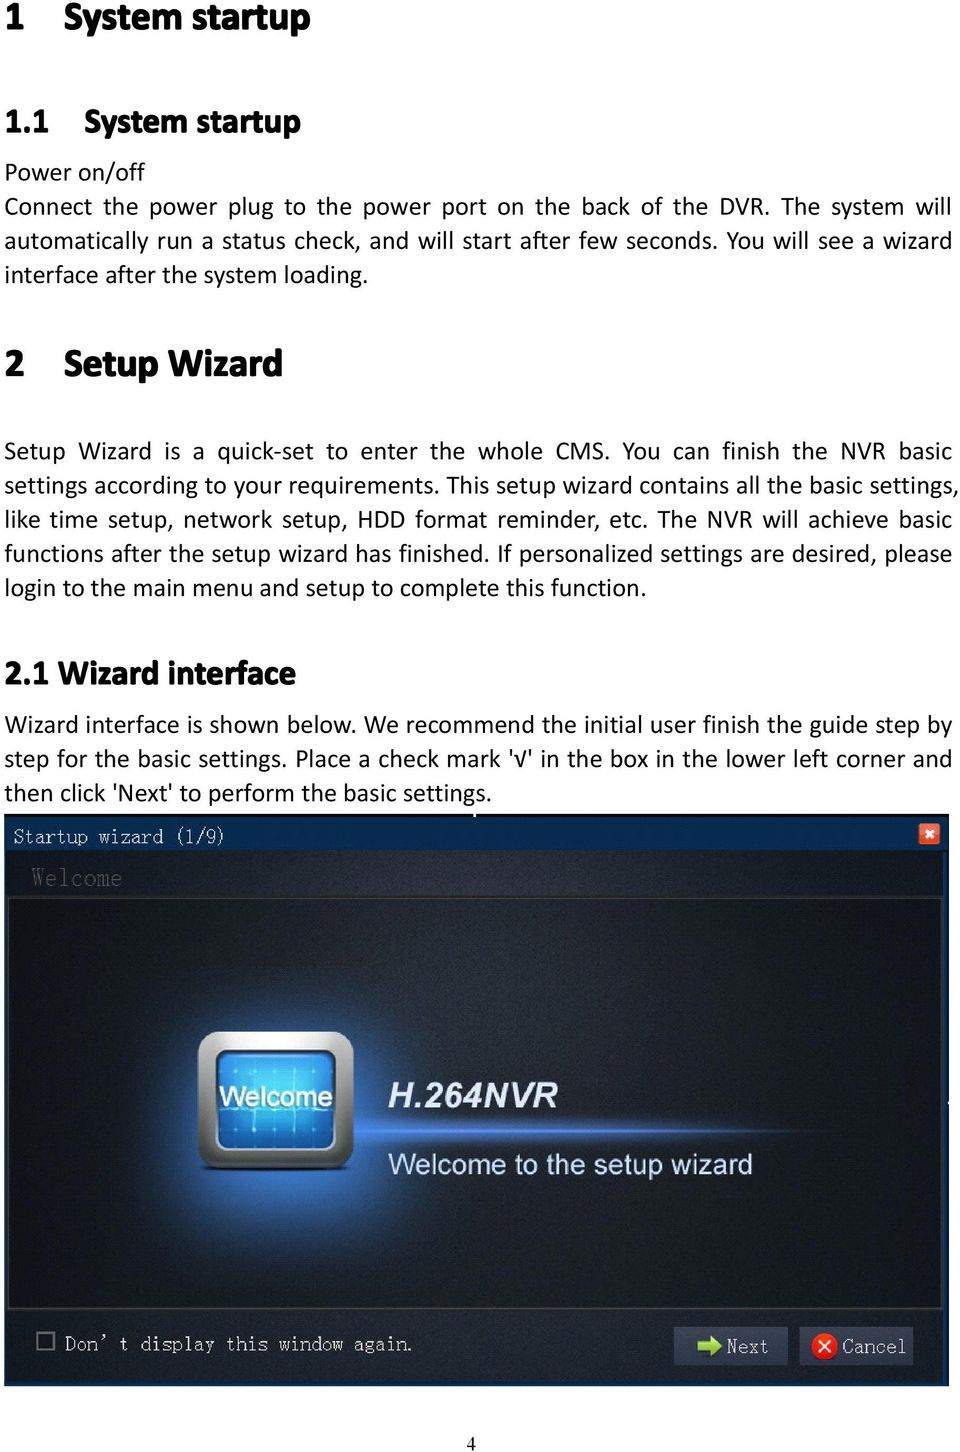 This setup wizard contains all the basic settings, like time setup, network setup, HDD format reminder, etc. The NVR will achieve basic functions after the setup wizard has finished.